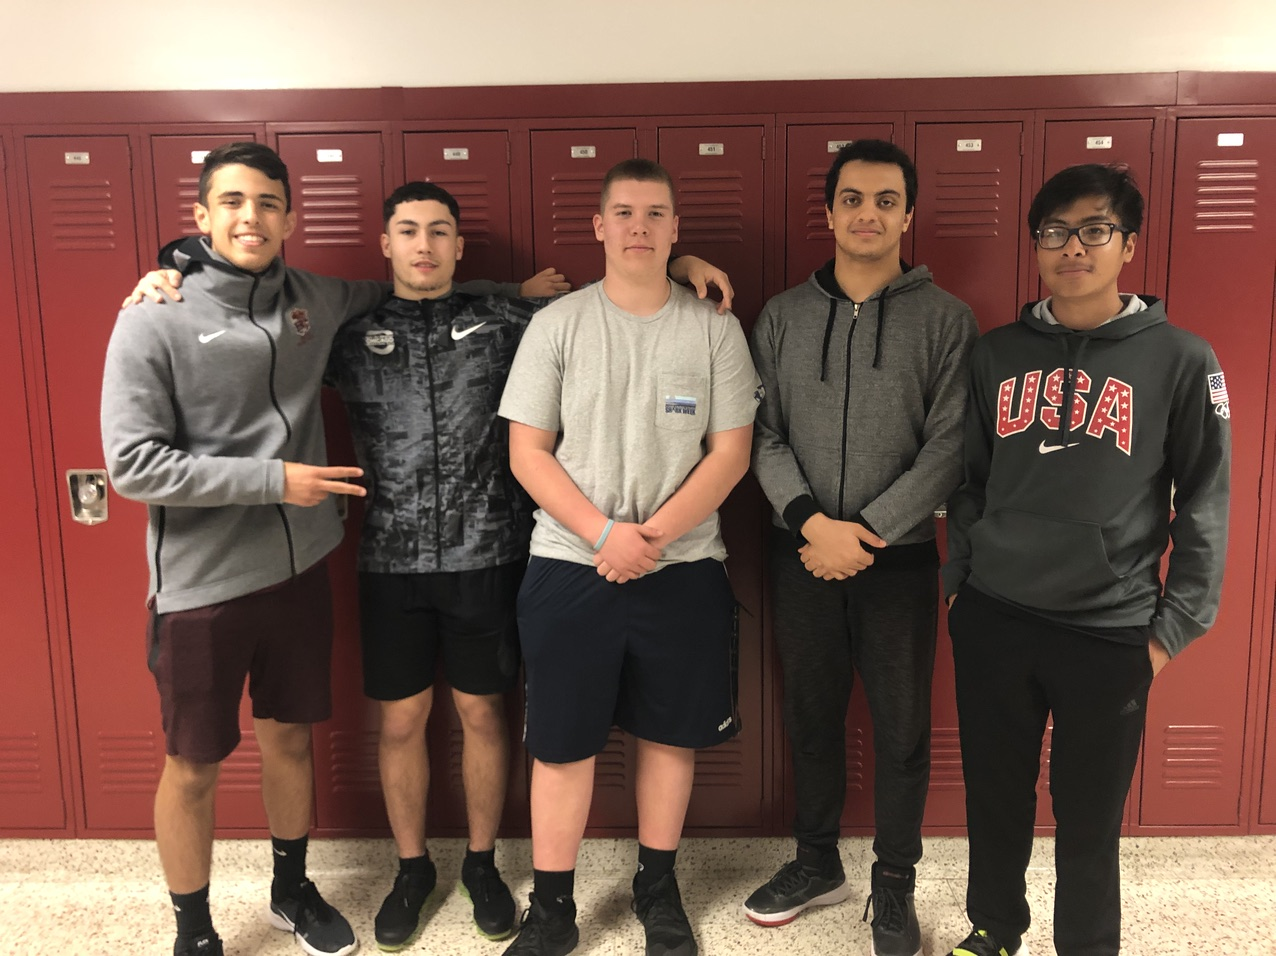 Carlstadt delegates include (from left to right) Anthony Lenoy, Alessandro Buffalino-Benameur & Dylan Caughey. East Rutherford delegates (from left to right) include Mario Barsoum and Dylan Valenzuela.